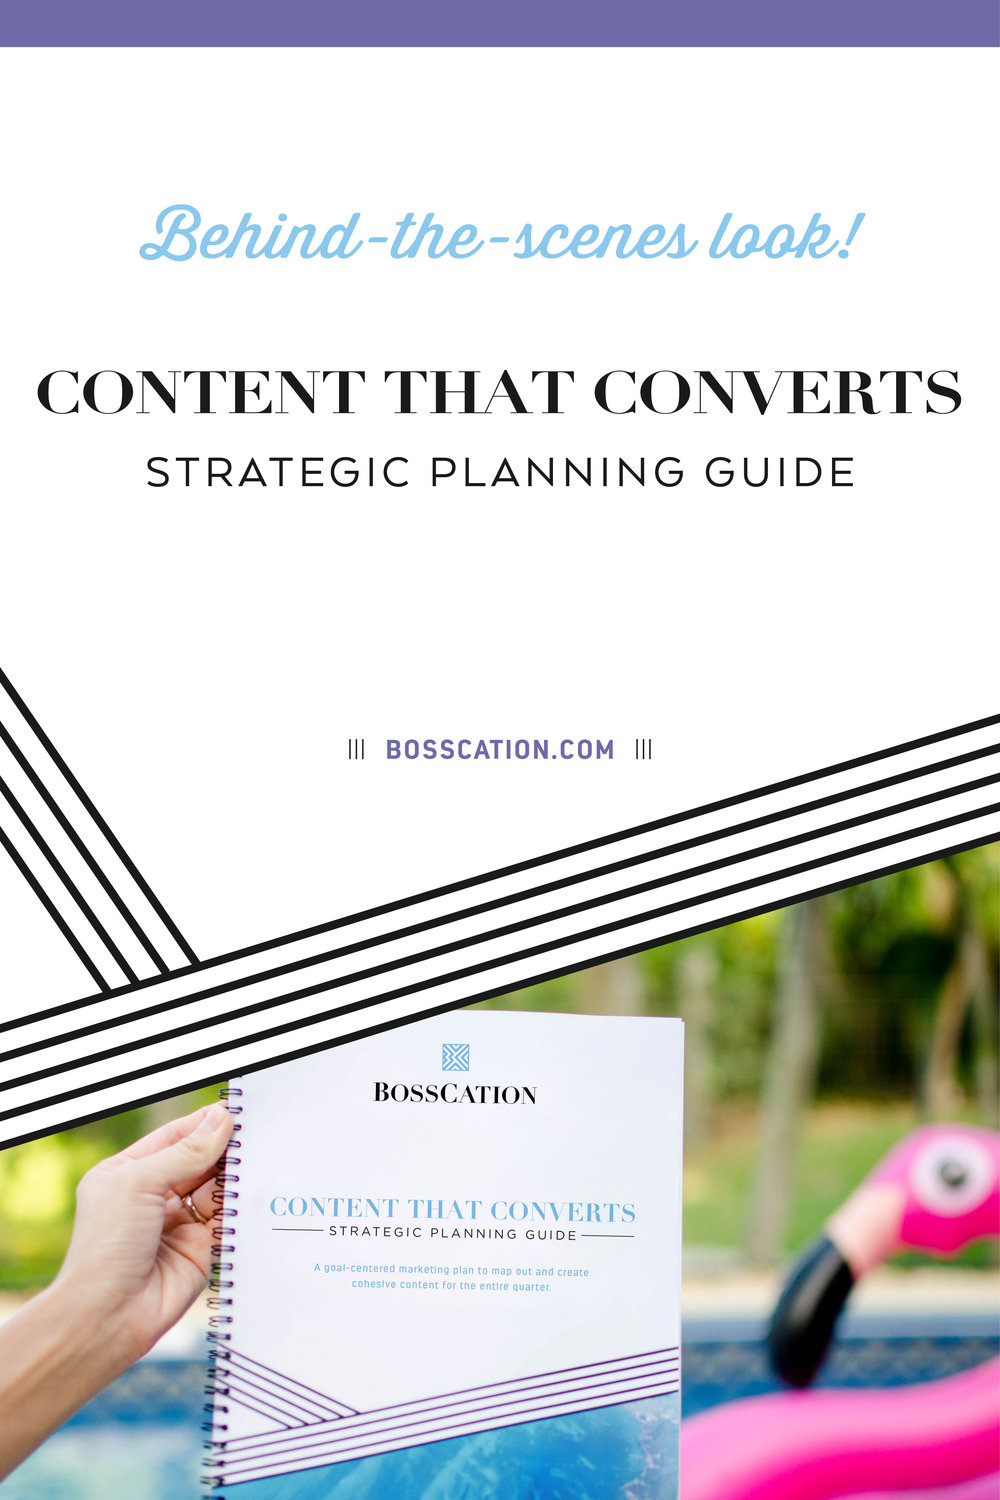 Behind-the-scenes look at the Bosscation Content That Converts strategic planning guide. This marketing planner helps you create content that leads to sales. Determine what to write or record, when to post it, and how to lead your audience to buy.